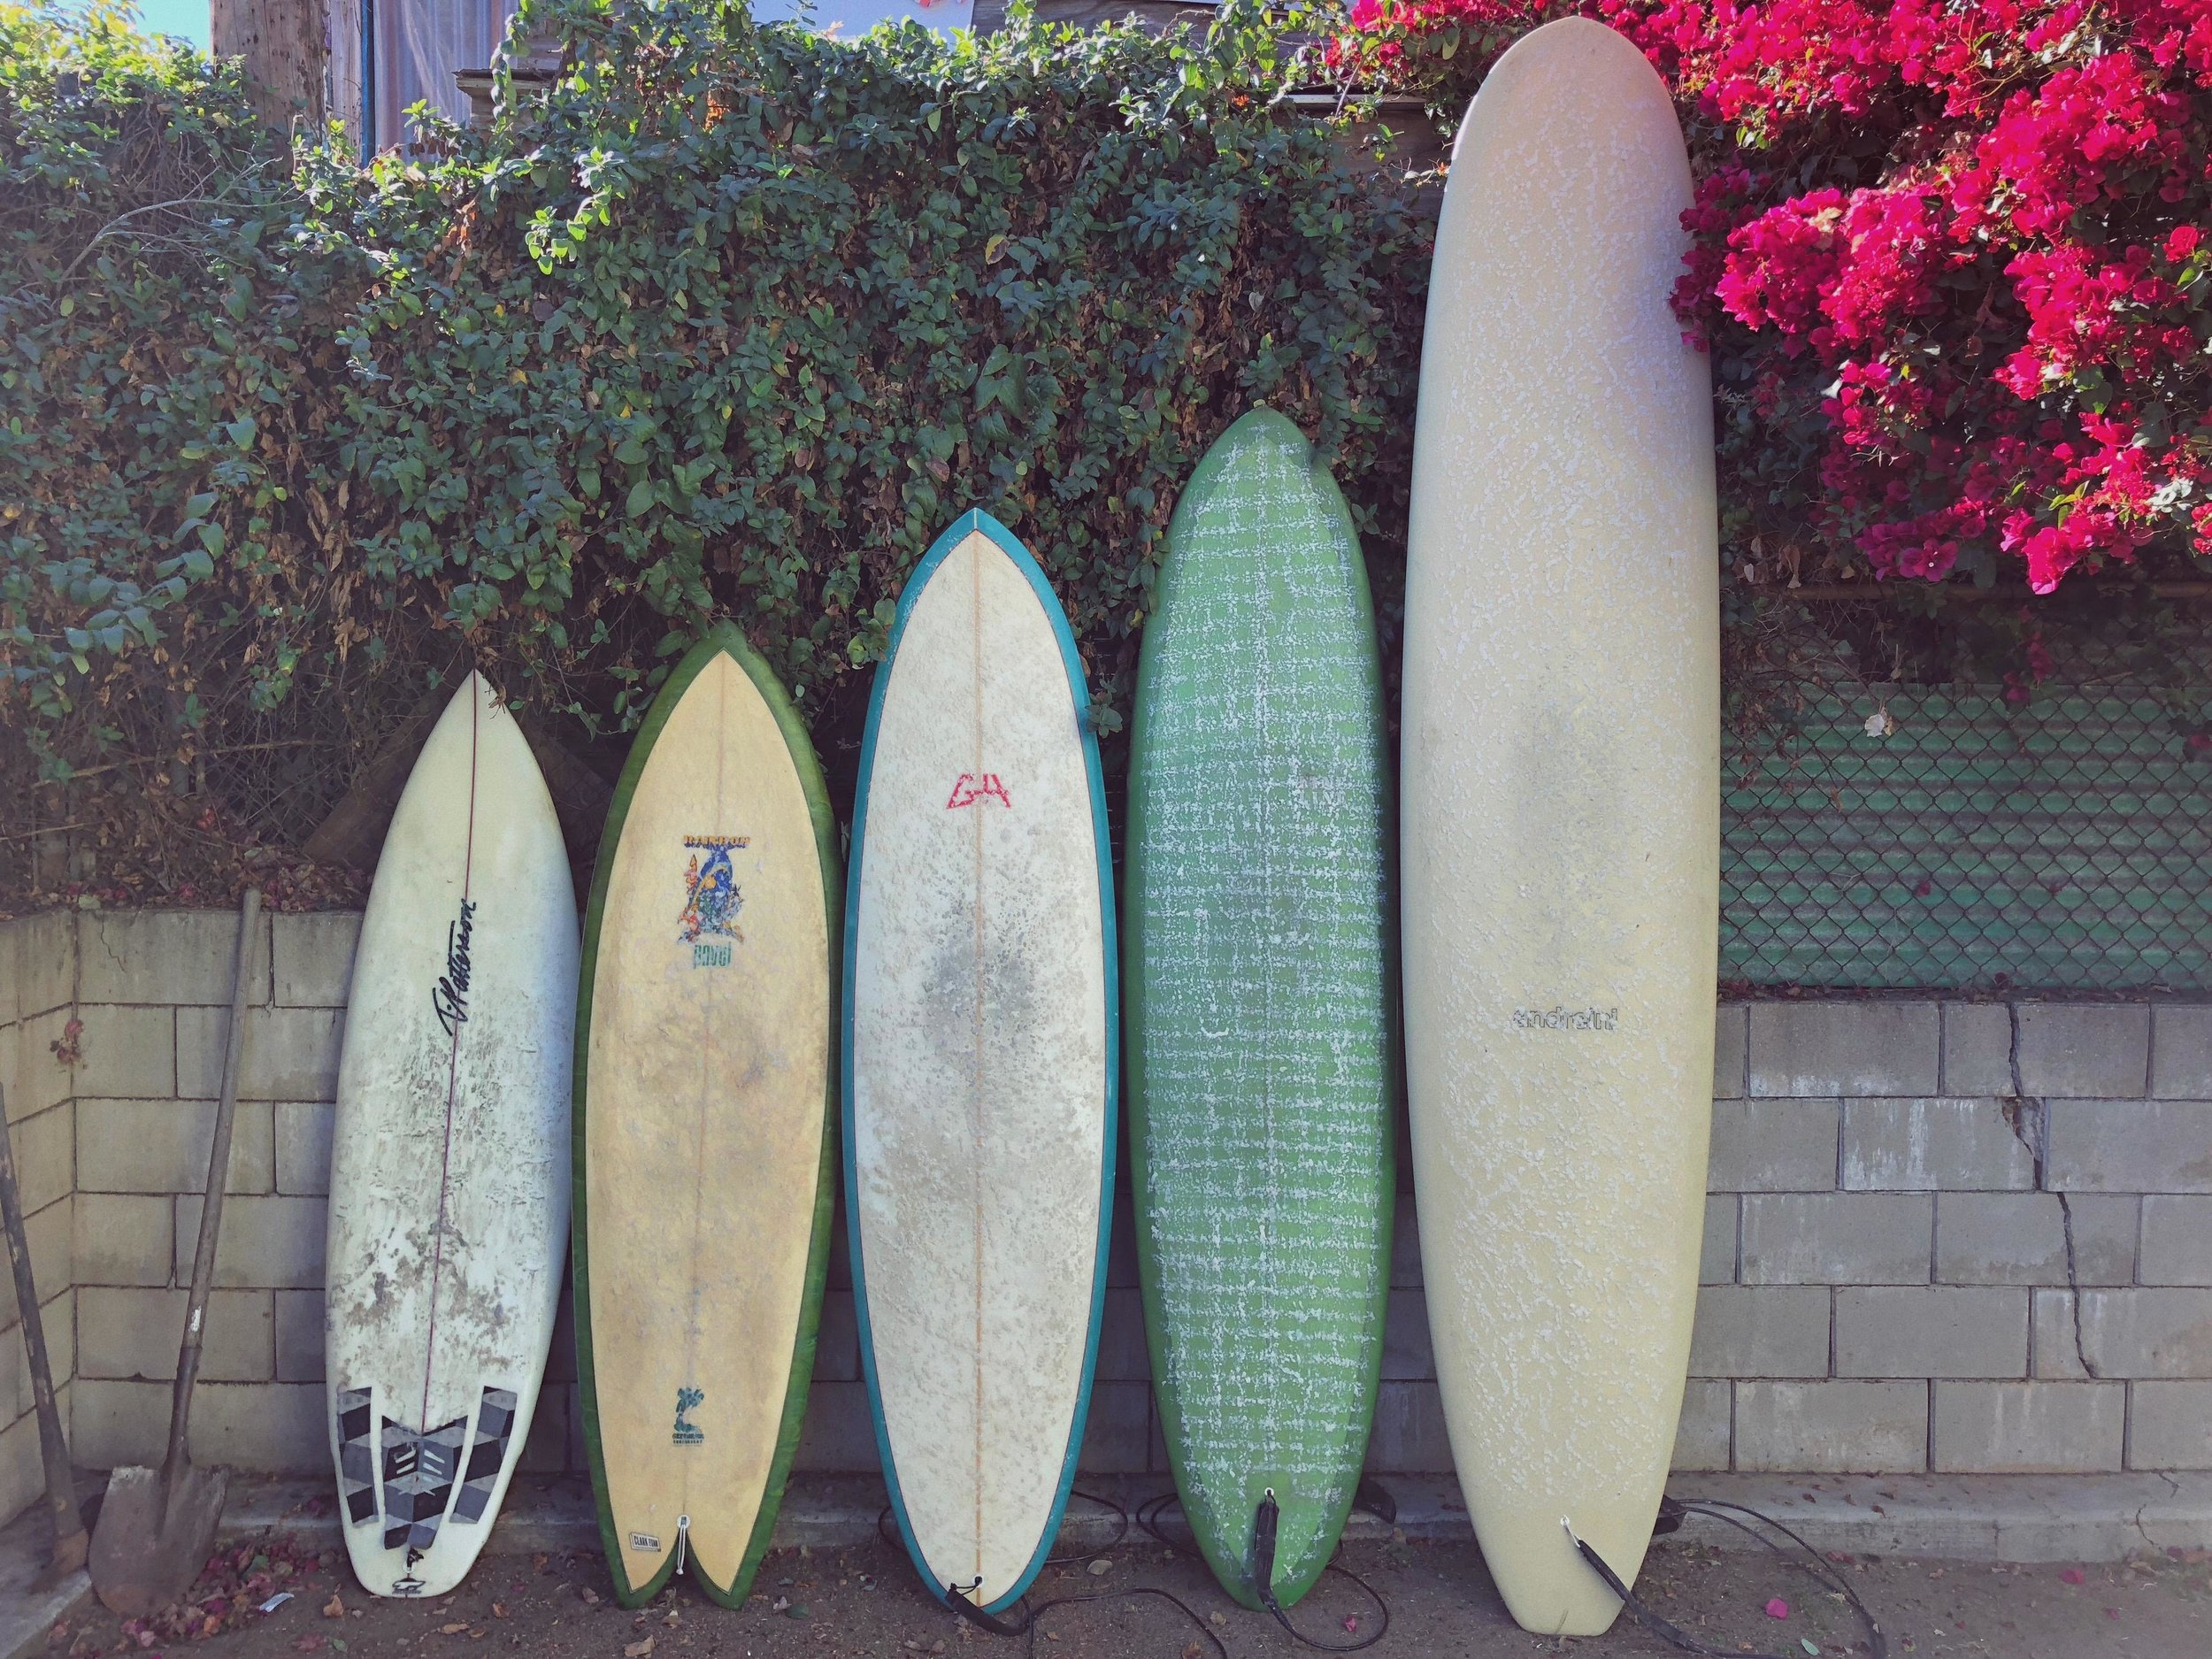 You don't need all five boards but you might one day want them.